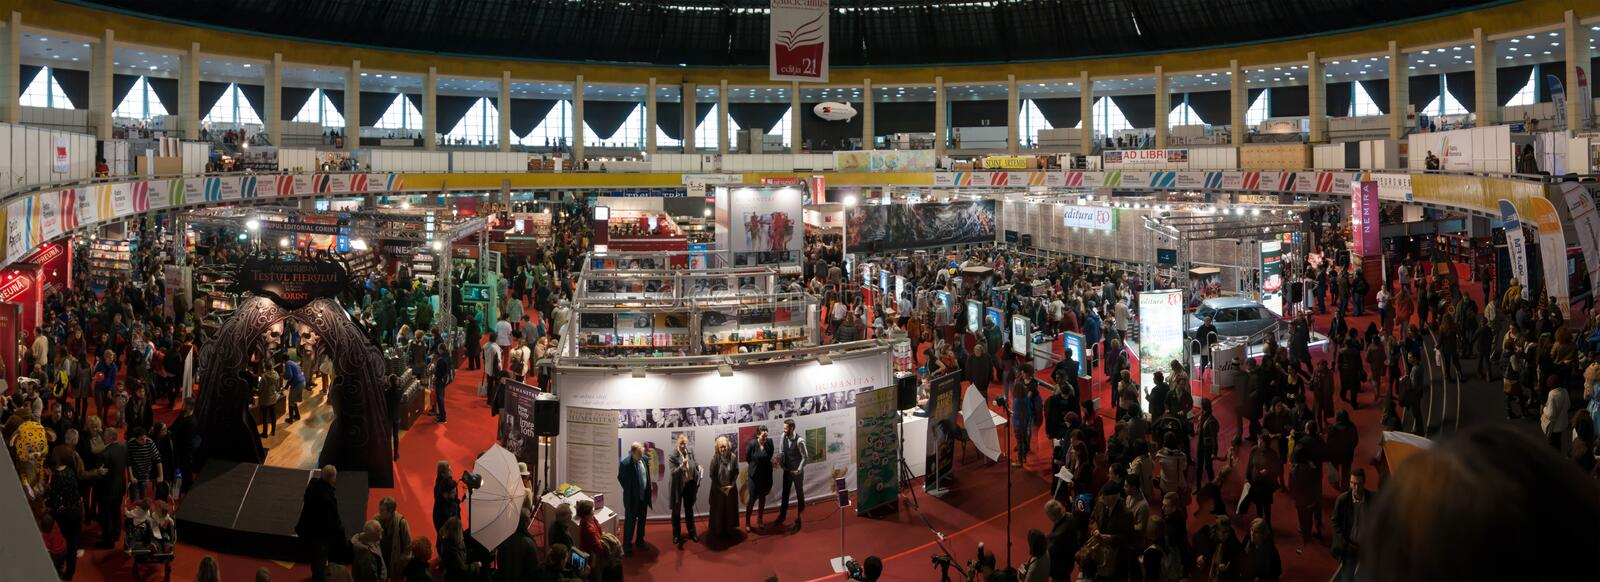 Gaudeamus International Book and Education Fair 2014 stock photography